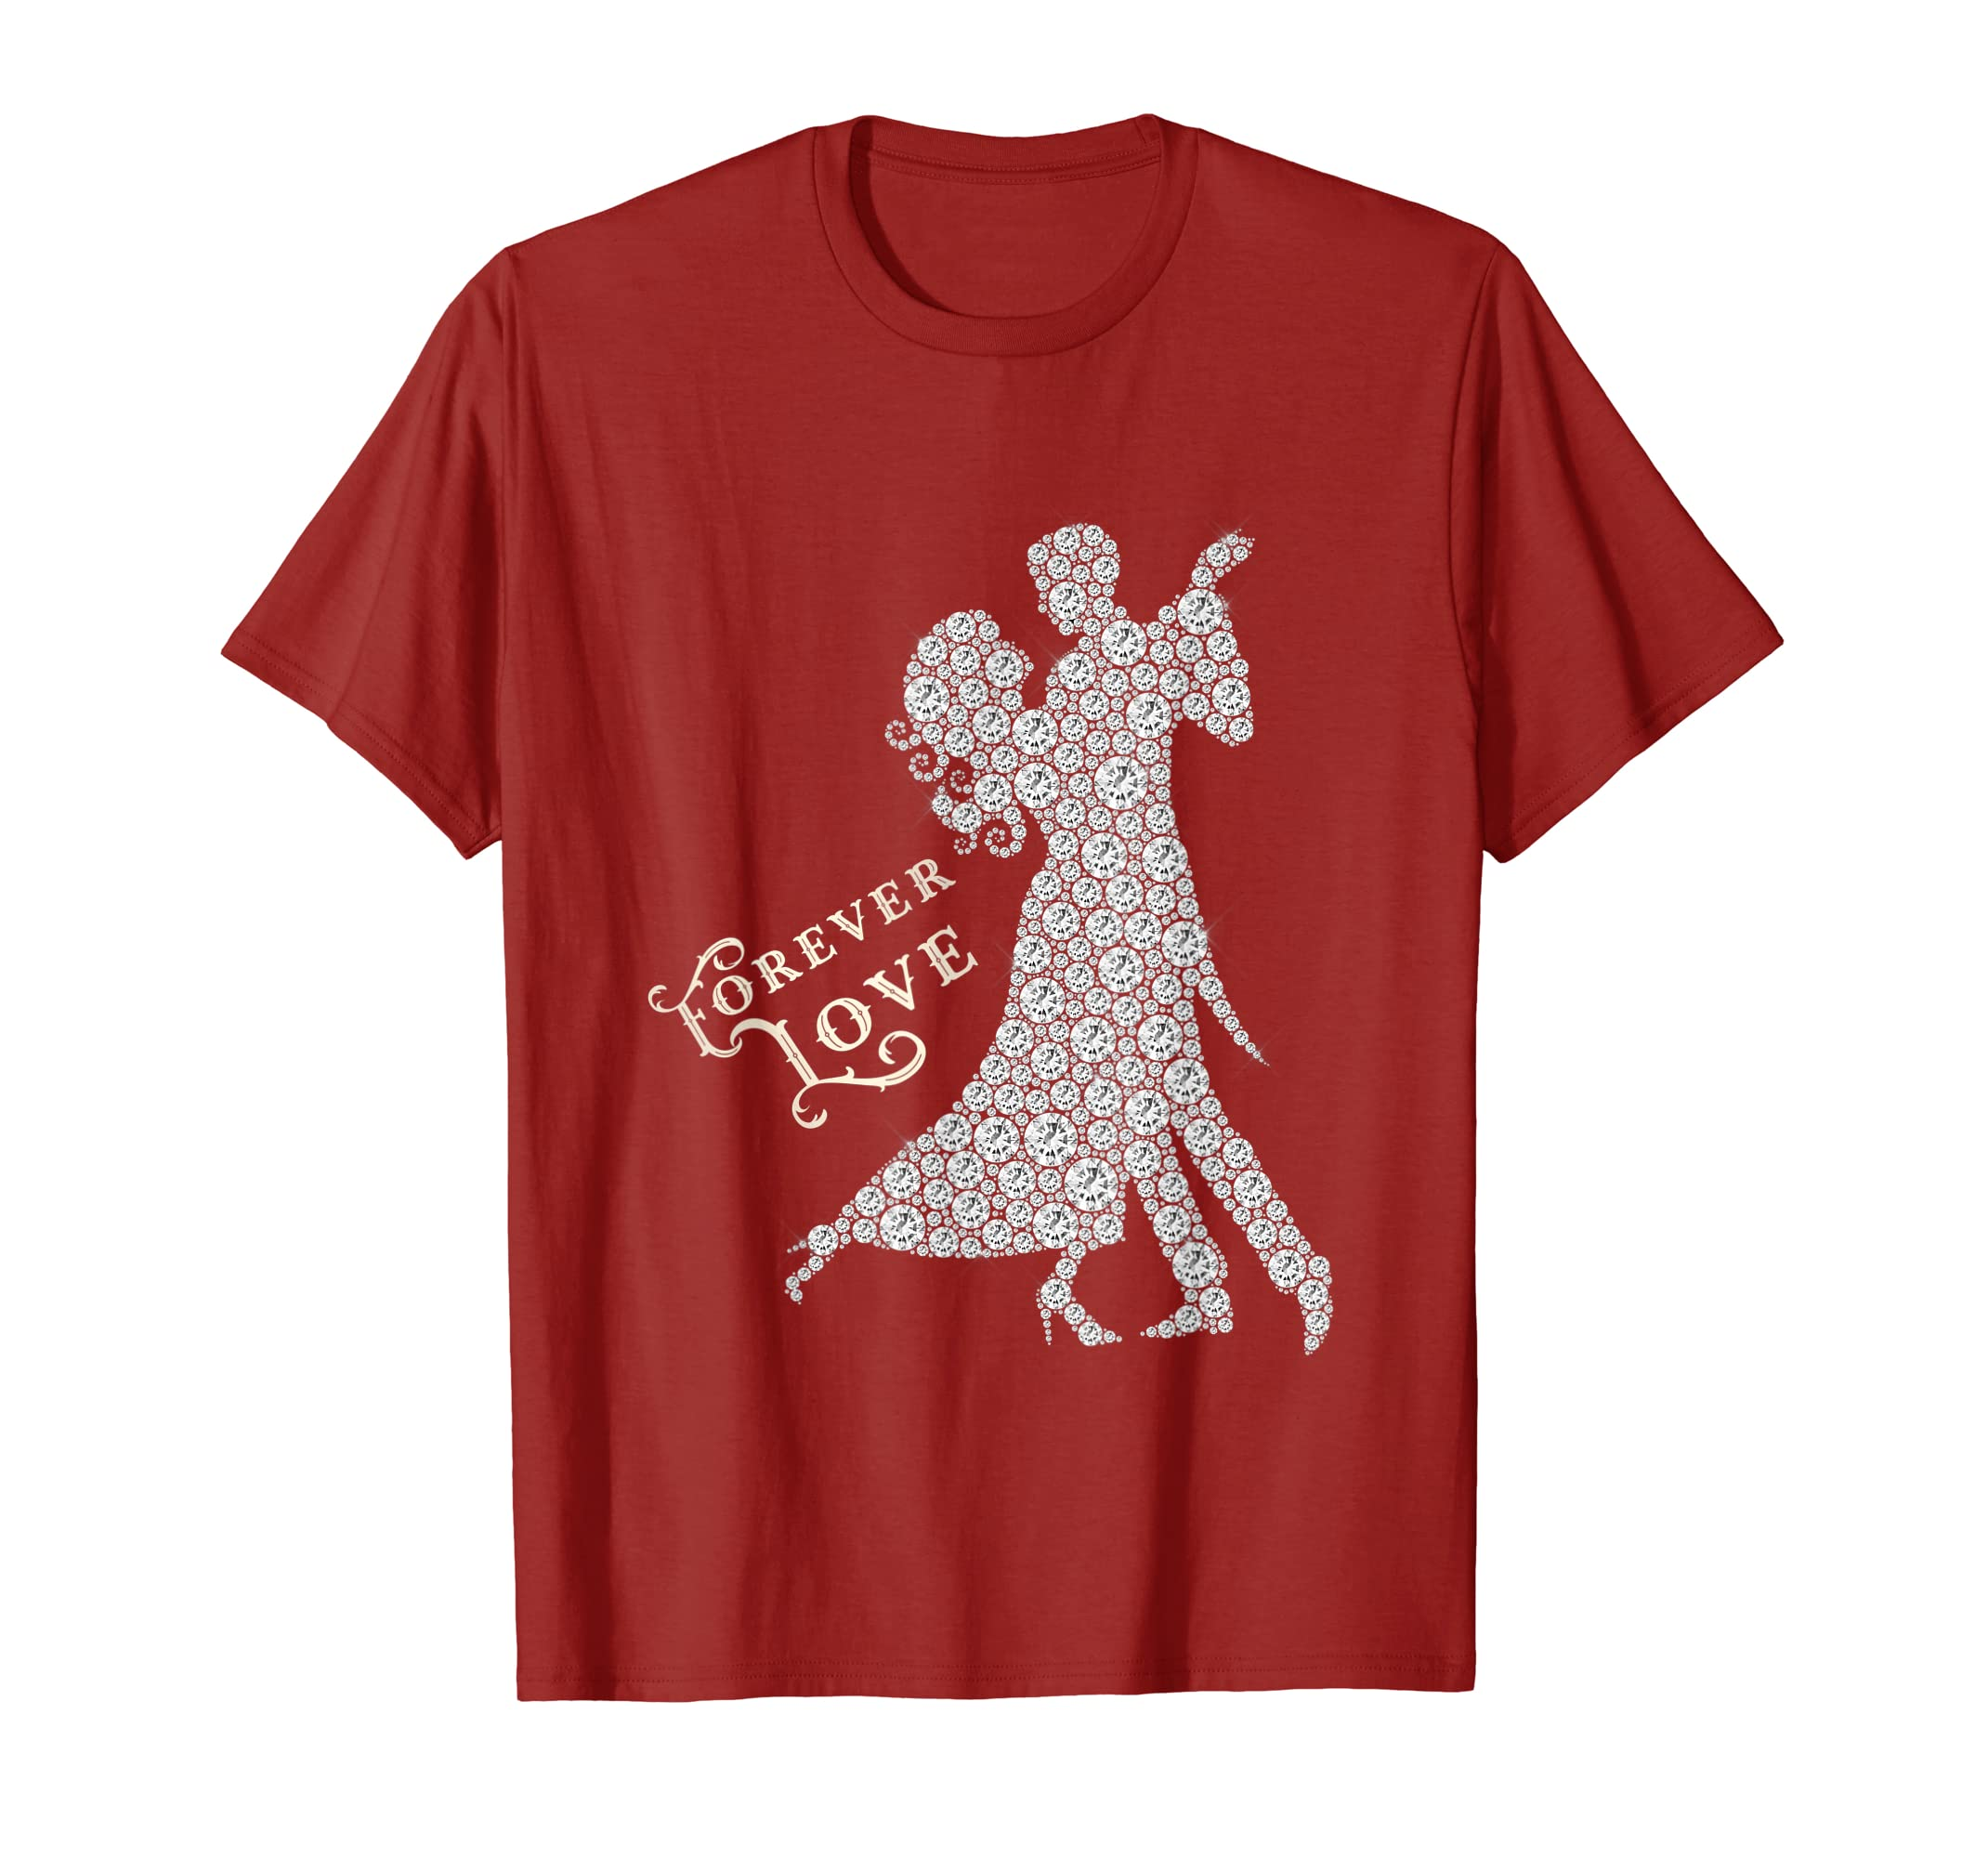 Forever Love Waltz Dance Valentines Day T-shirt